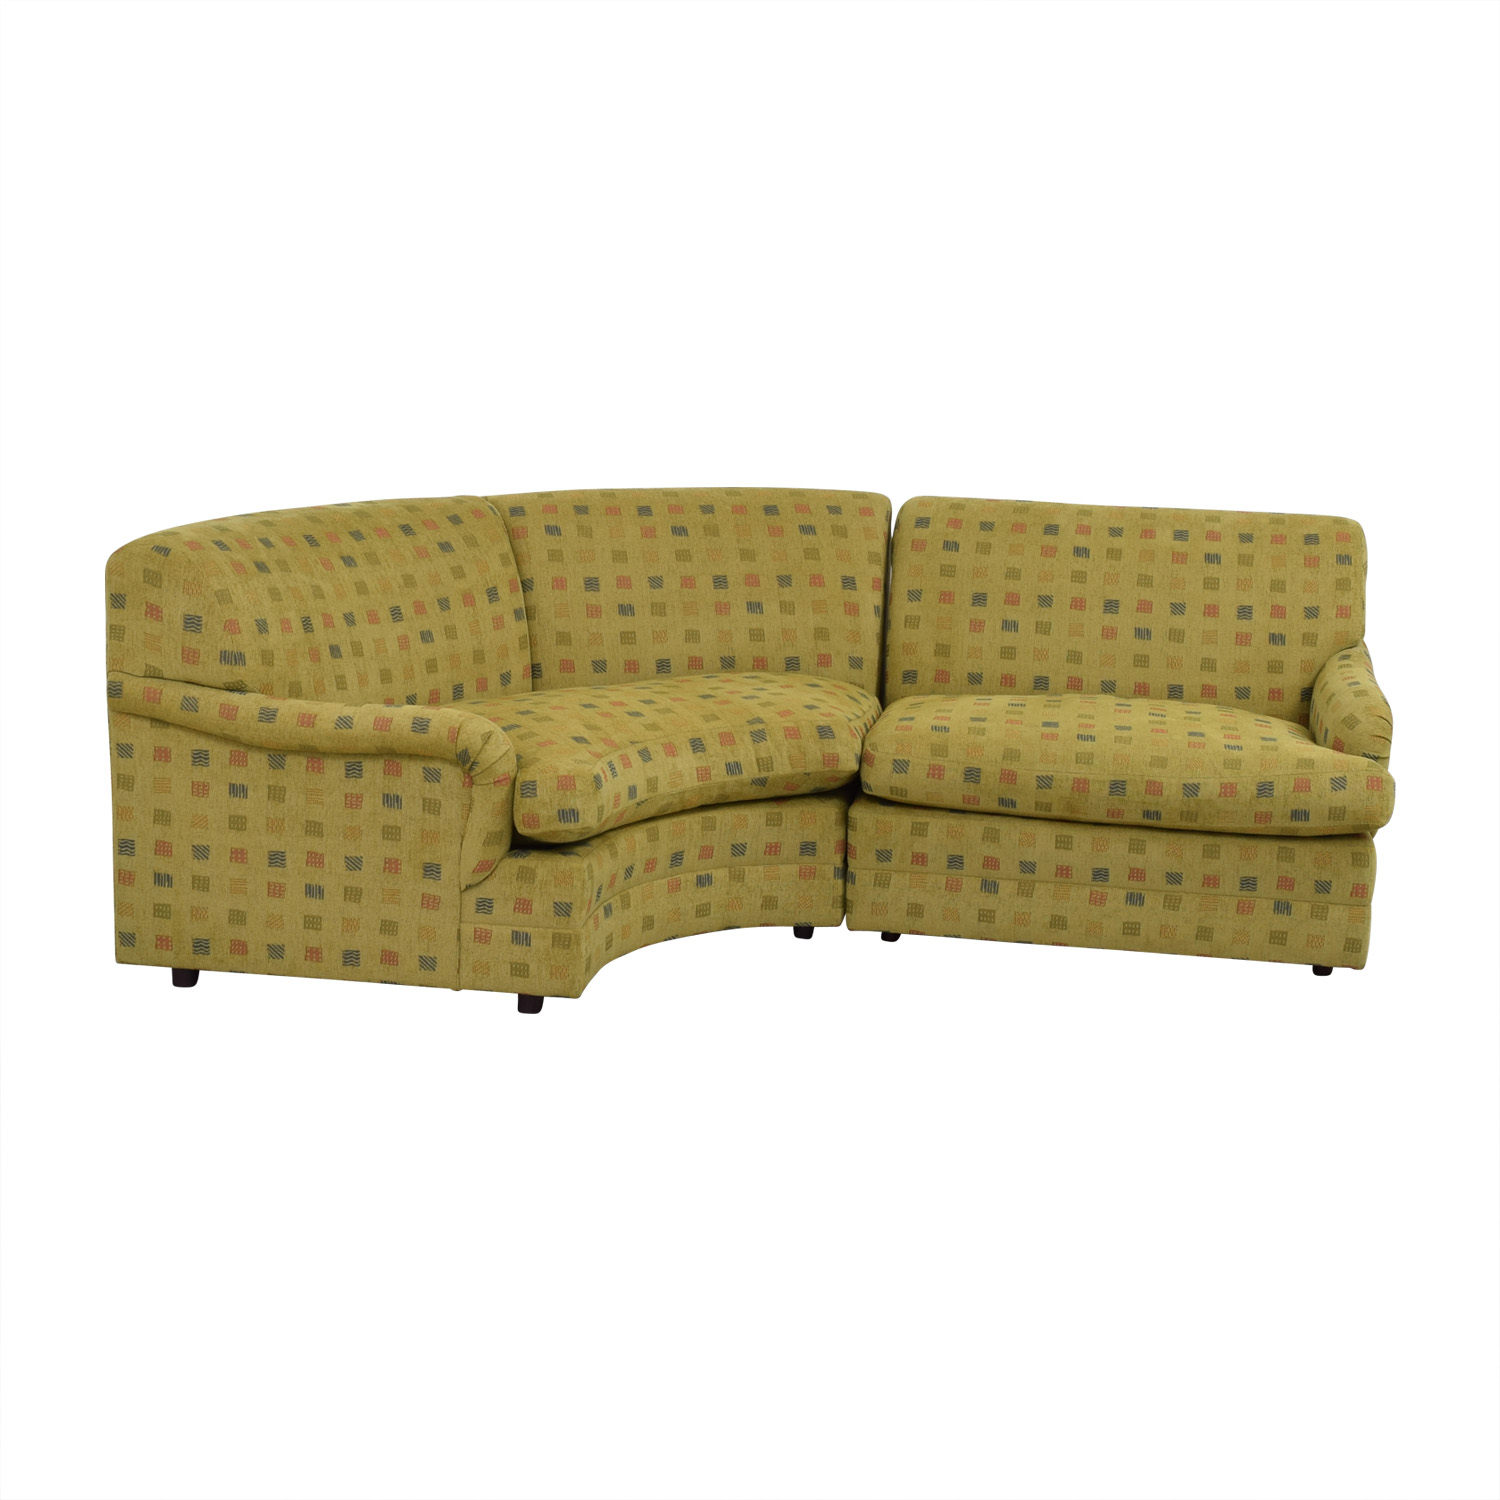 Mason Art Mason Art Mustard Custom Curved Sofa nyc